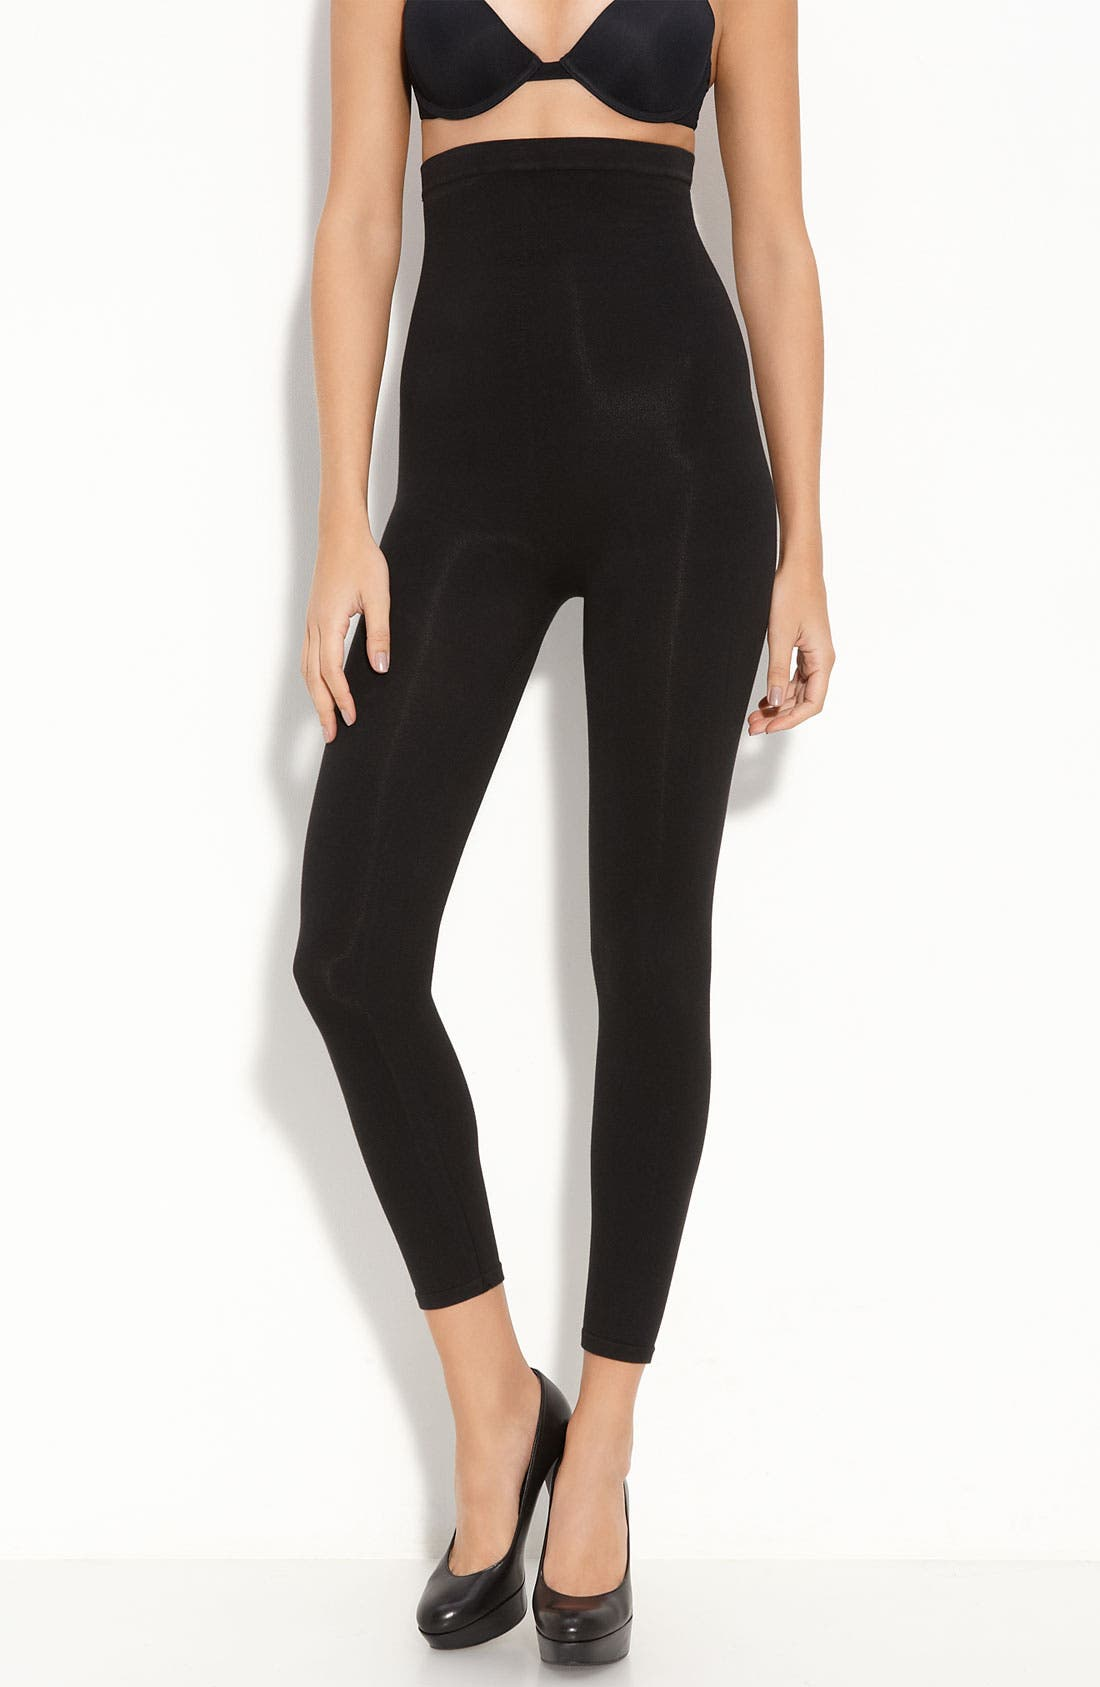 Alternate Image 1 Selected - SPANX® 'Look-at-Me' High Waist Shaping Leggings